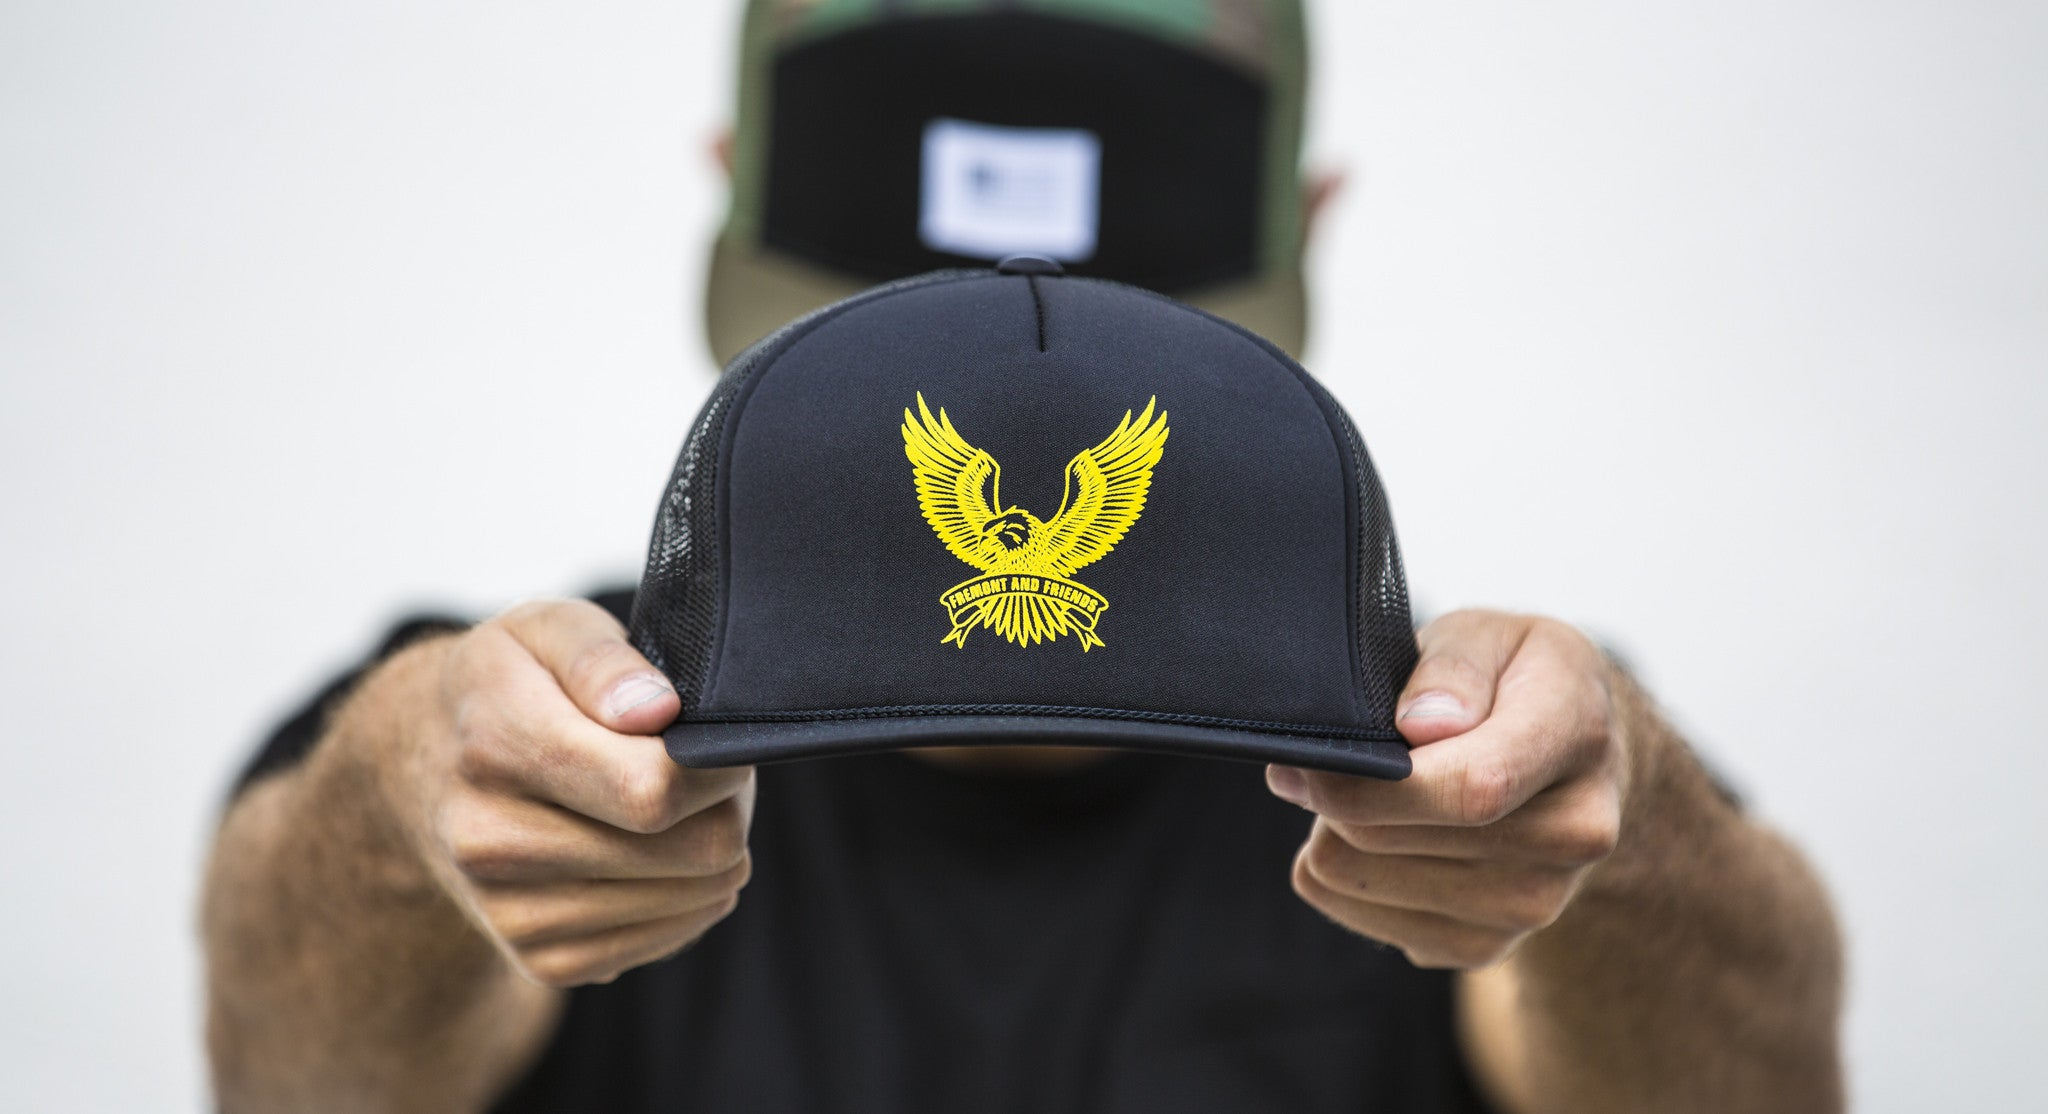 BATTLE BORN EAGLE // BLACK & GOLD